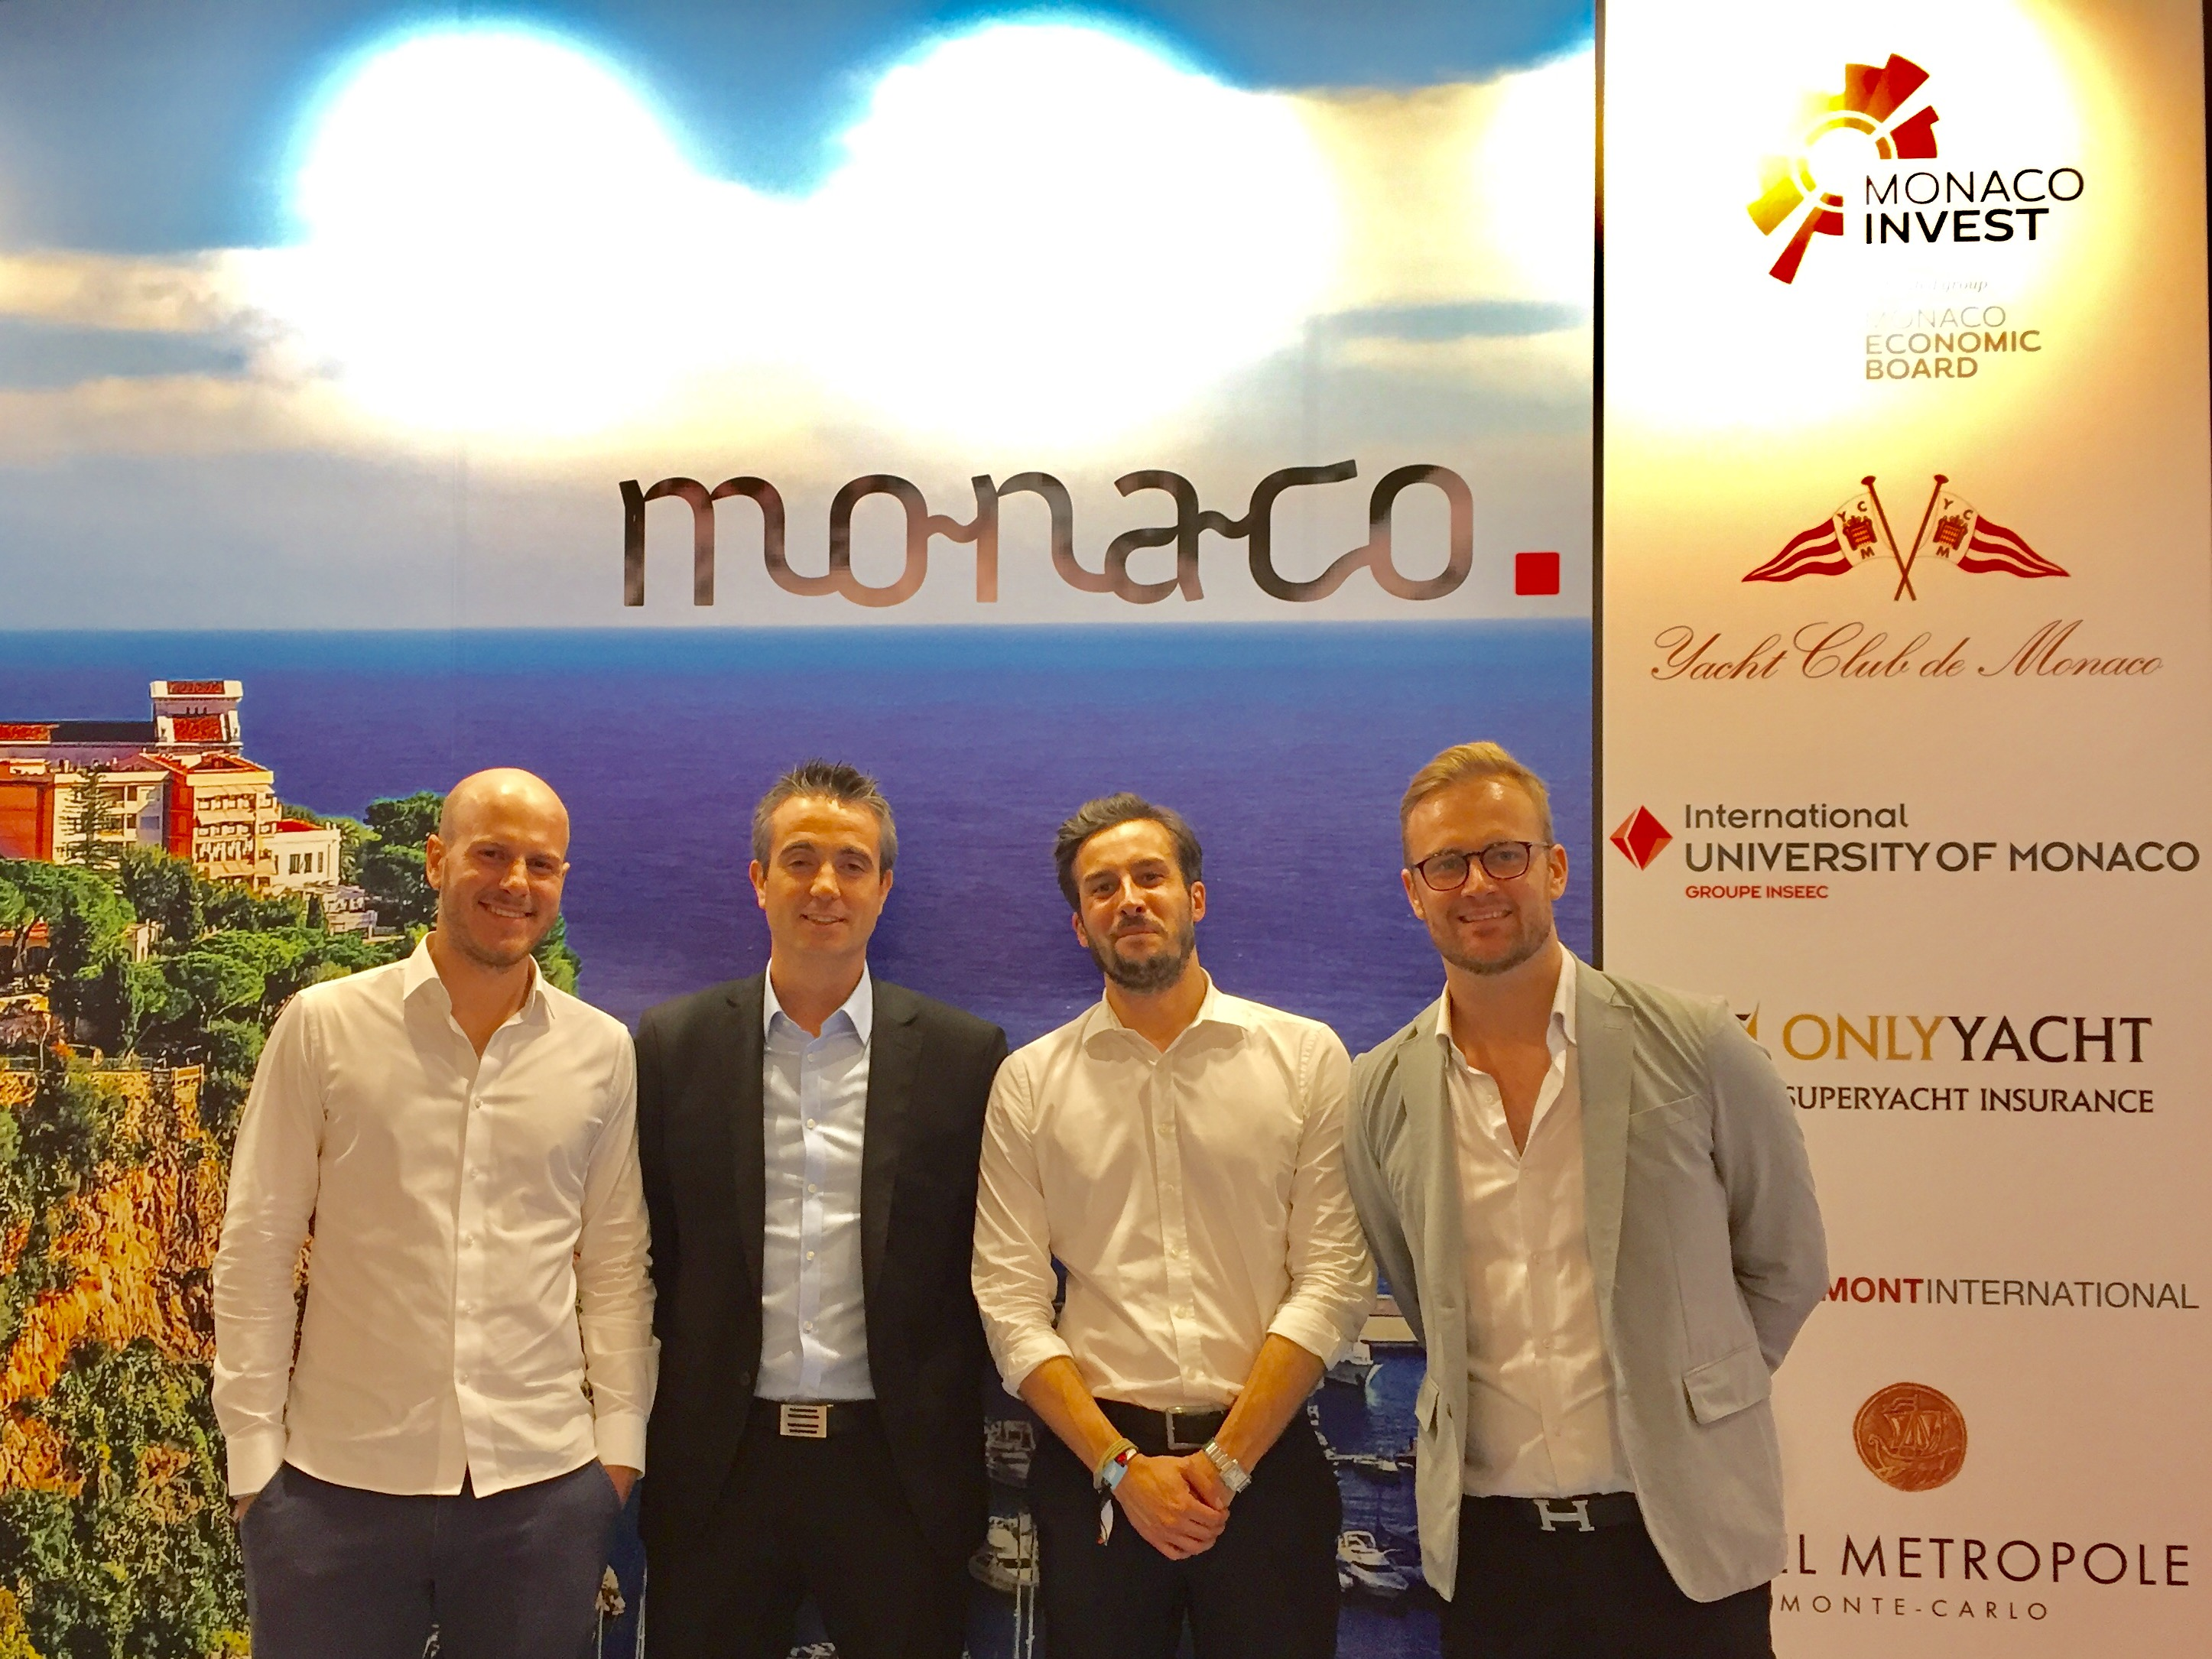 MEB meets Monaco Business Etranger network